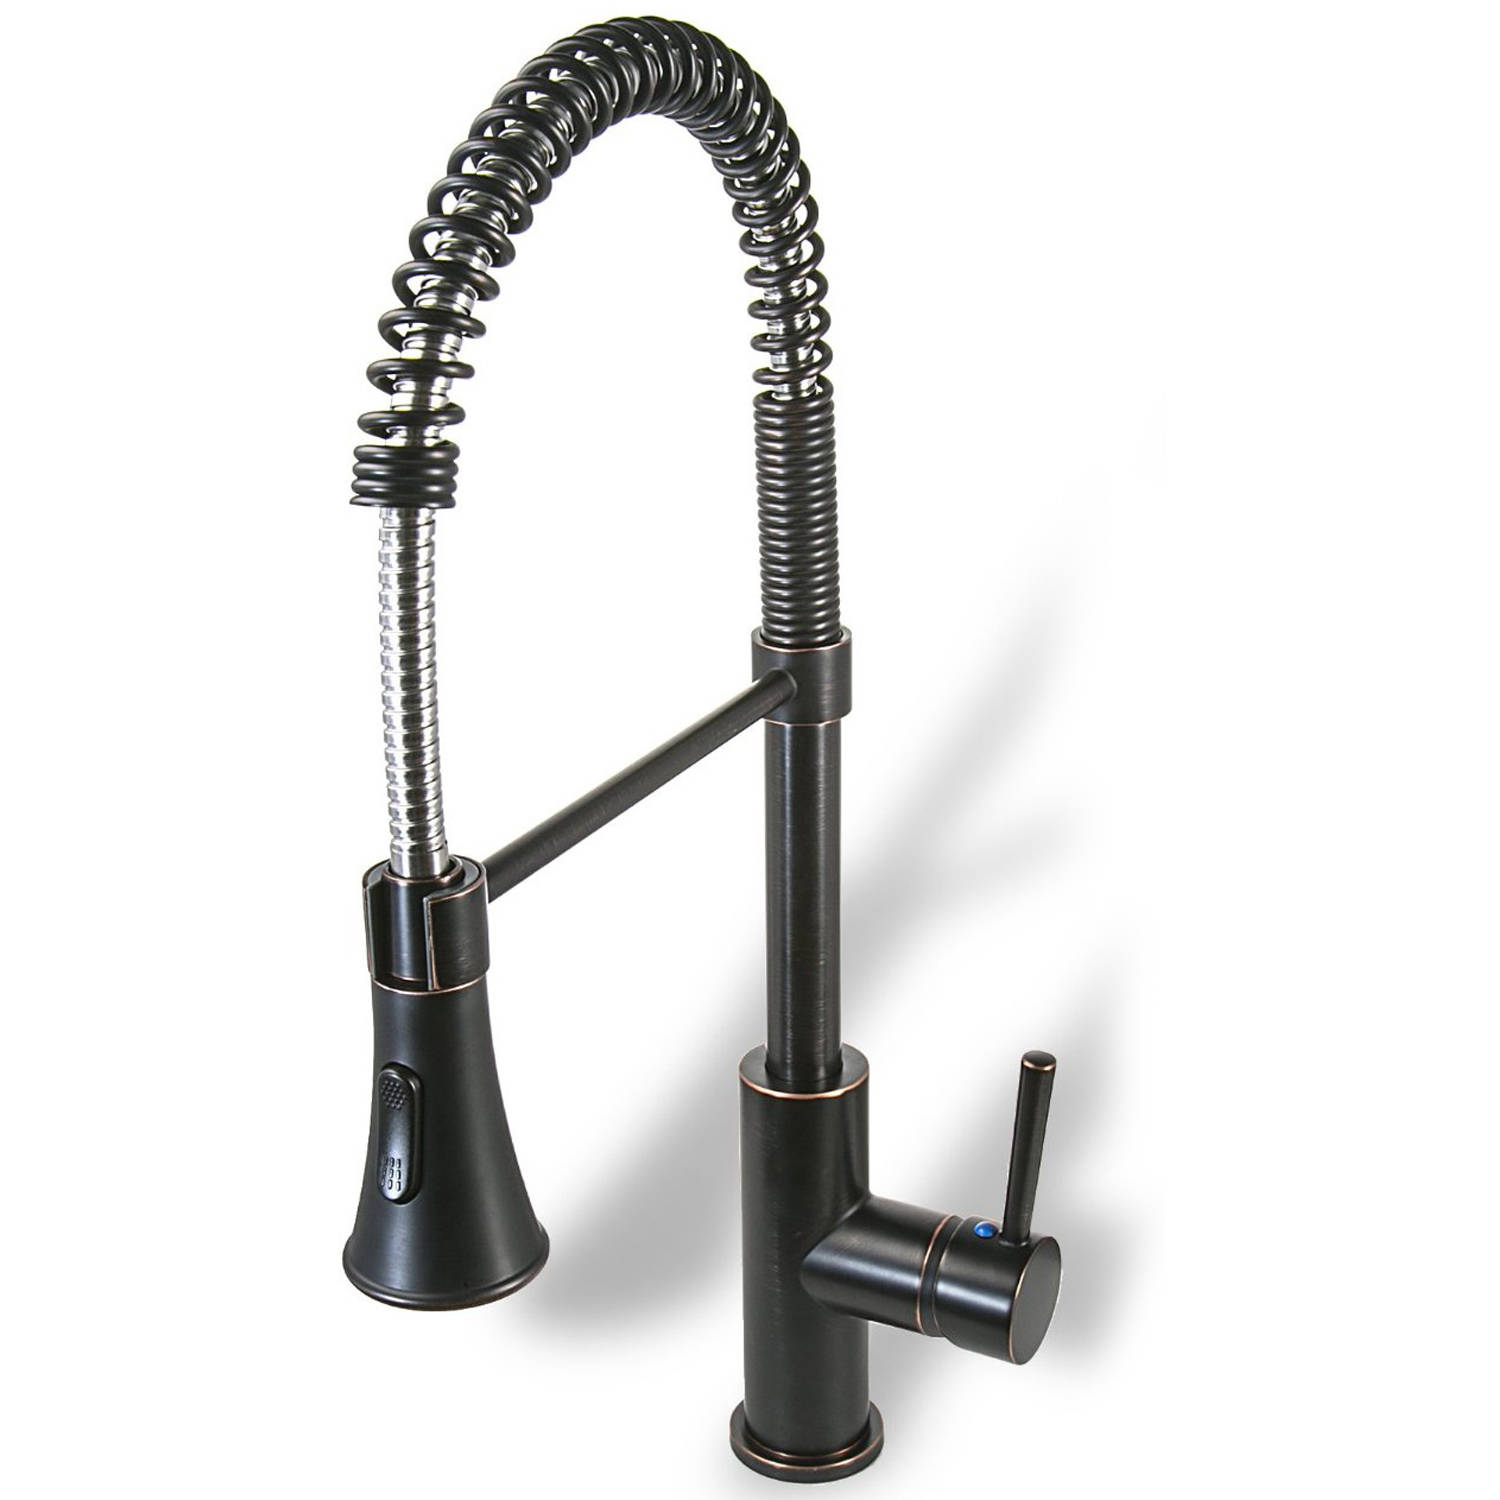 Ultra Faucets Uf17205 Oil Rubbed Bronze Finish Single Handle Kitchen